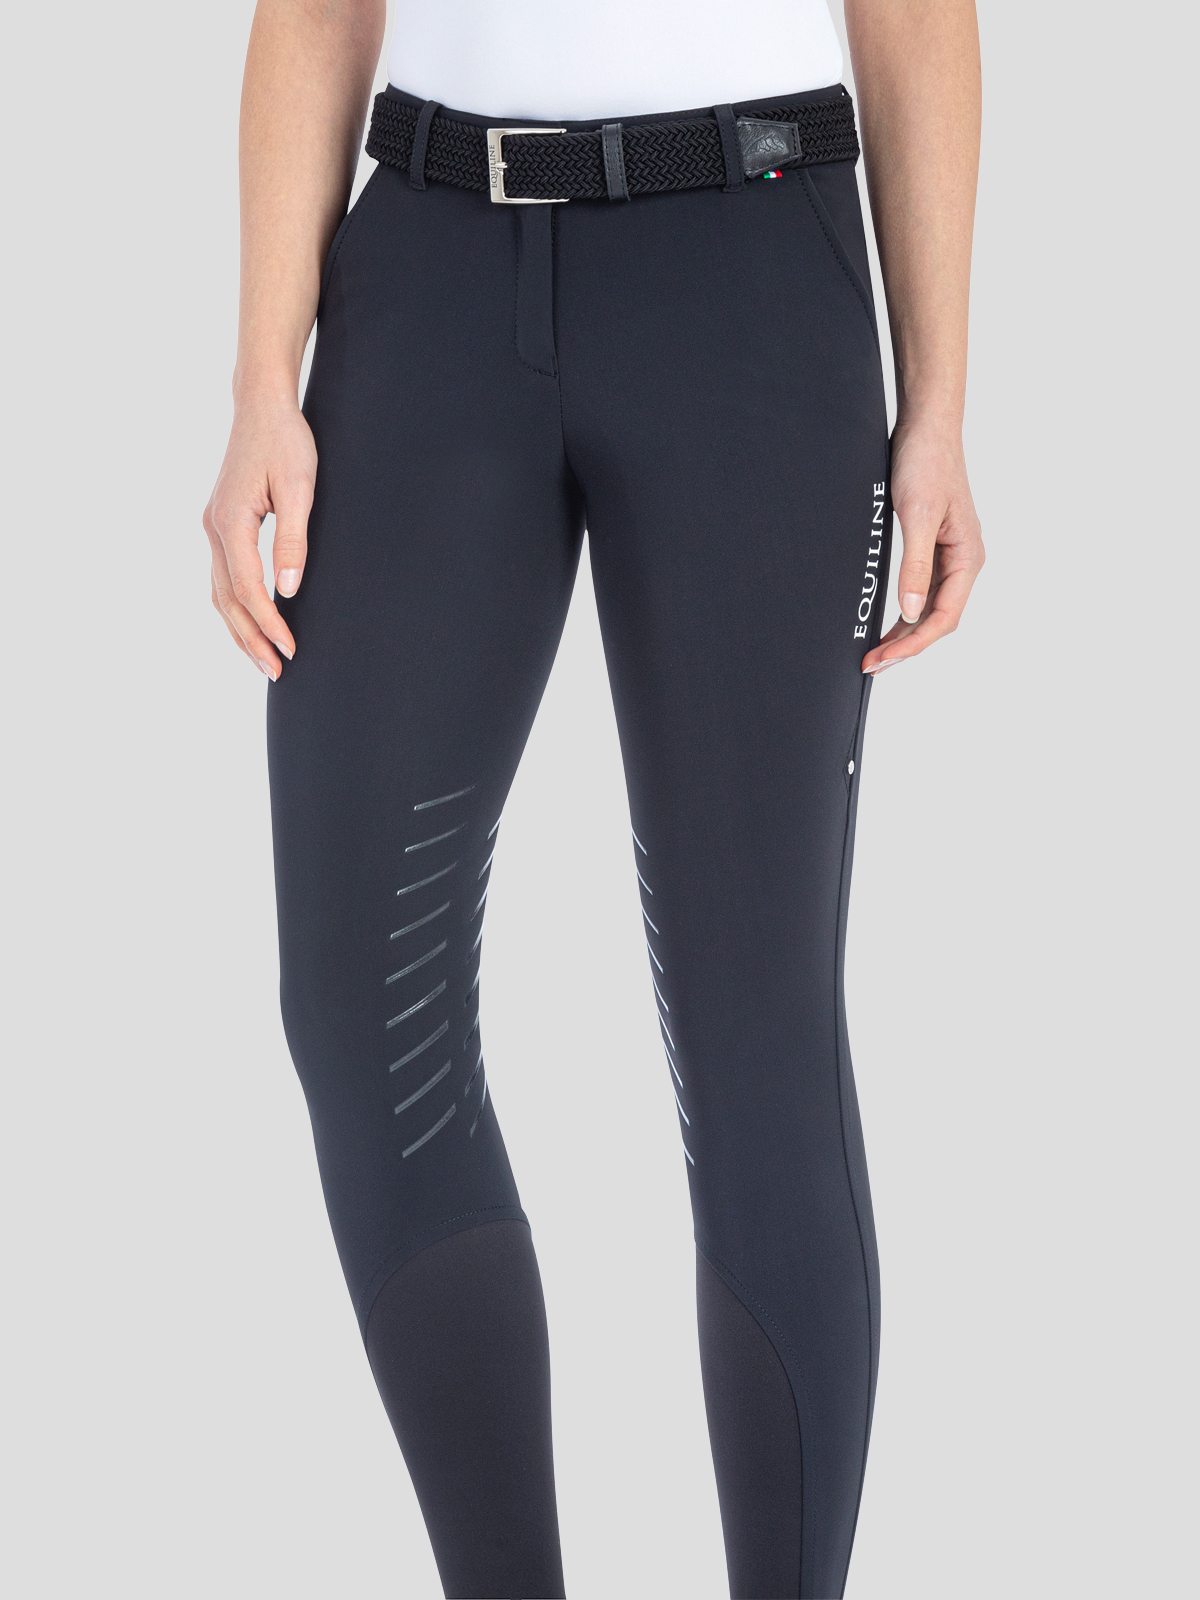 CostantineC Women's Knee Grip Breeches in B-Move 1